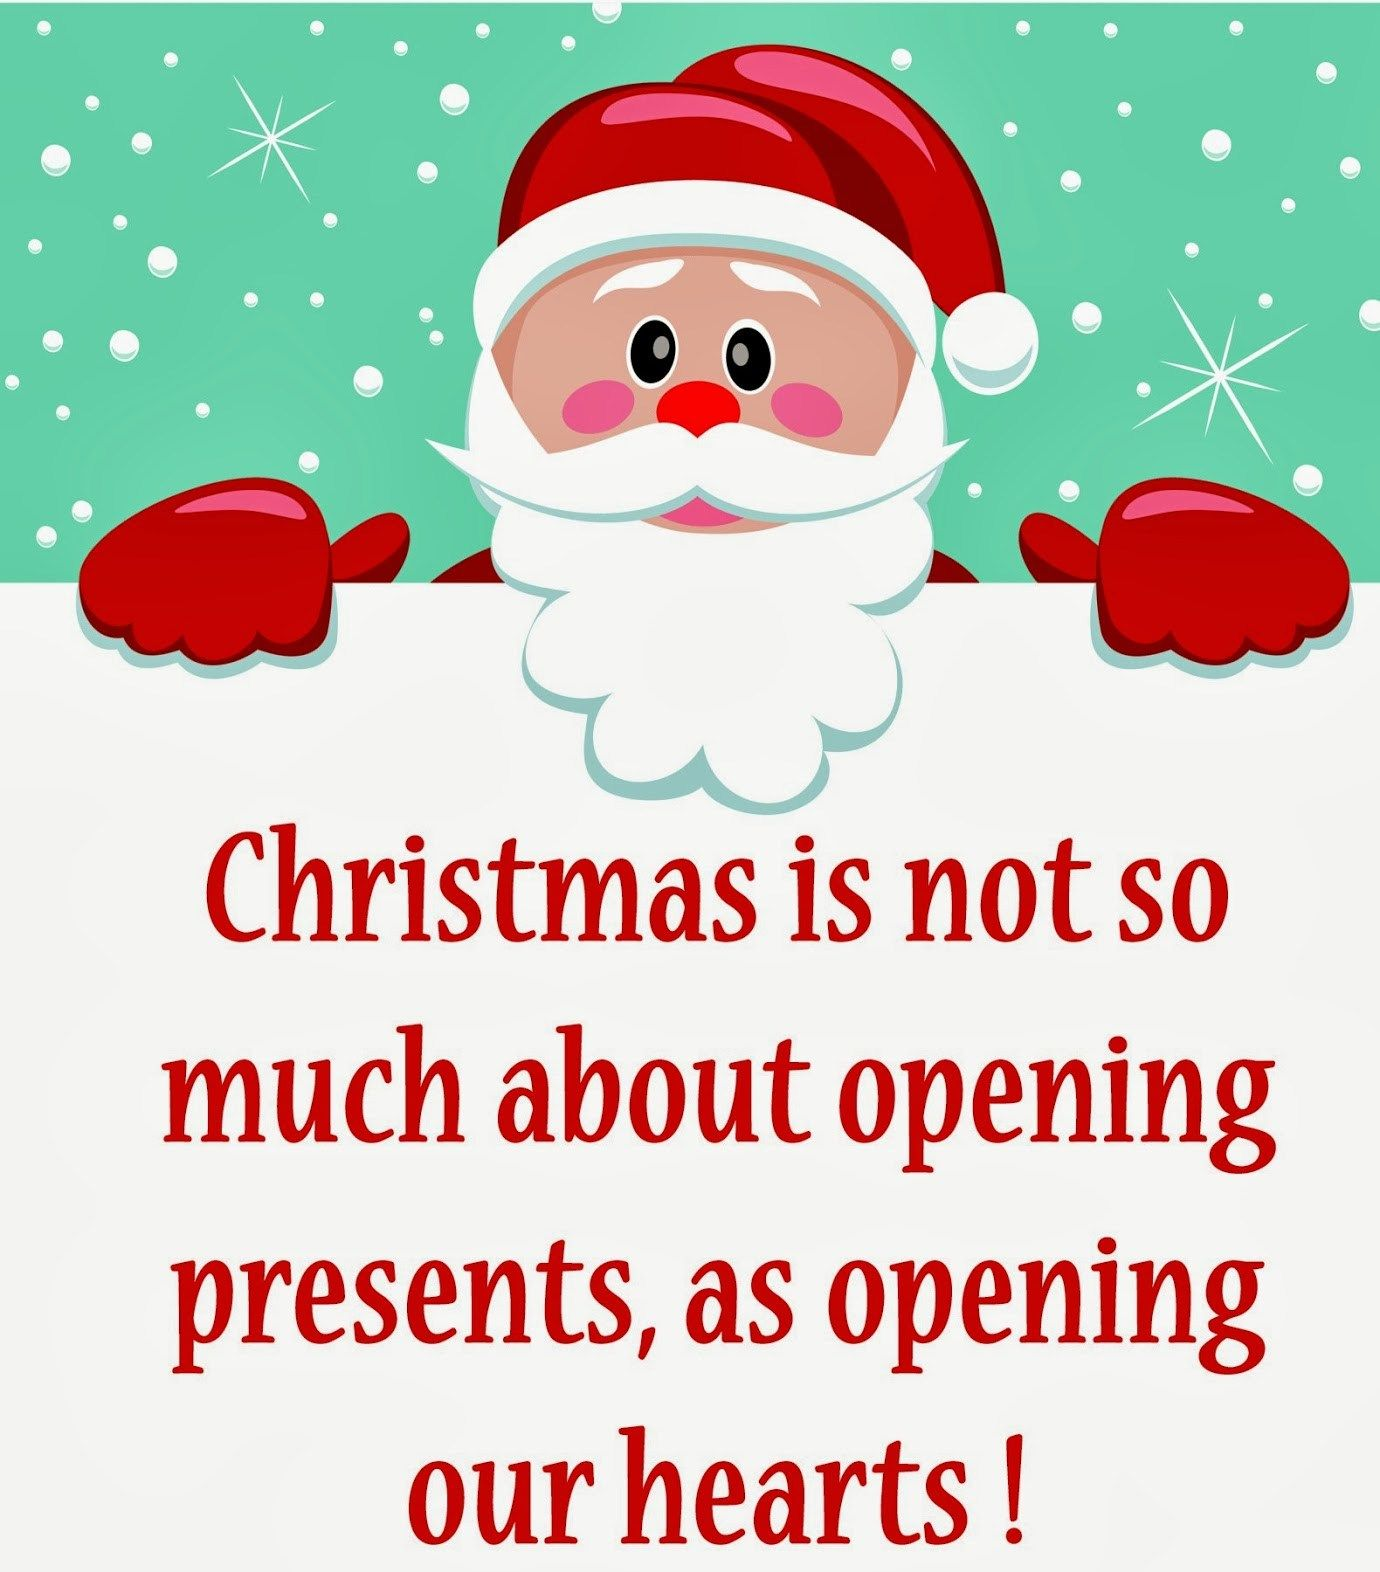 Christmas quotes wallpapers 2015 christmas greetings merry christmas wishes inspirational xmas greetings funny messages kristyandbryce Images